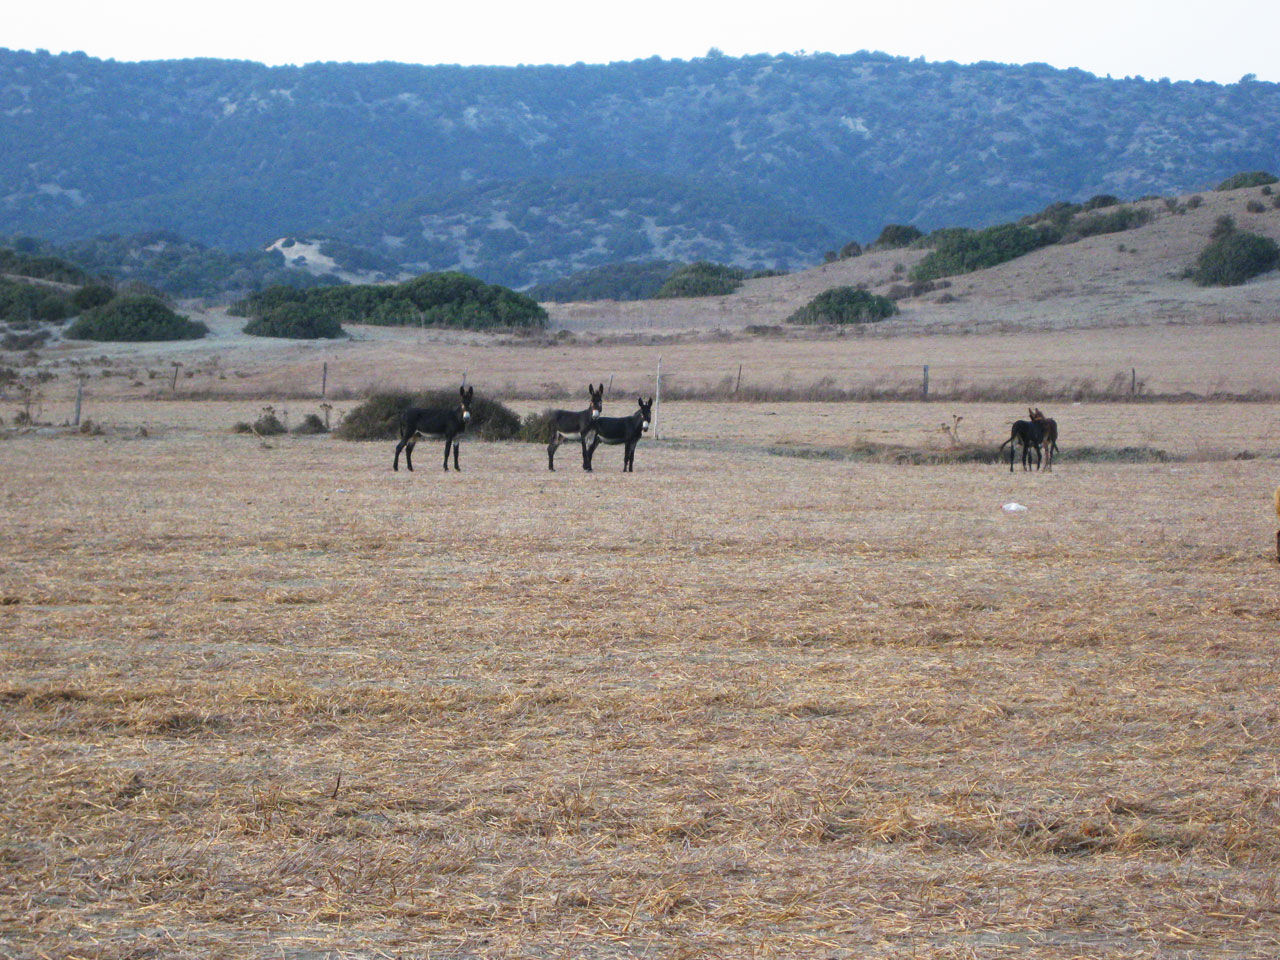 Wild donkeys on the Karpaz Peninsula, Cyprus